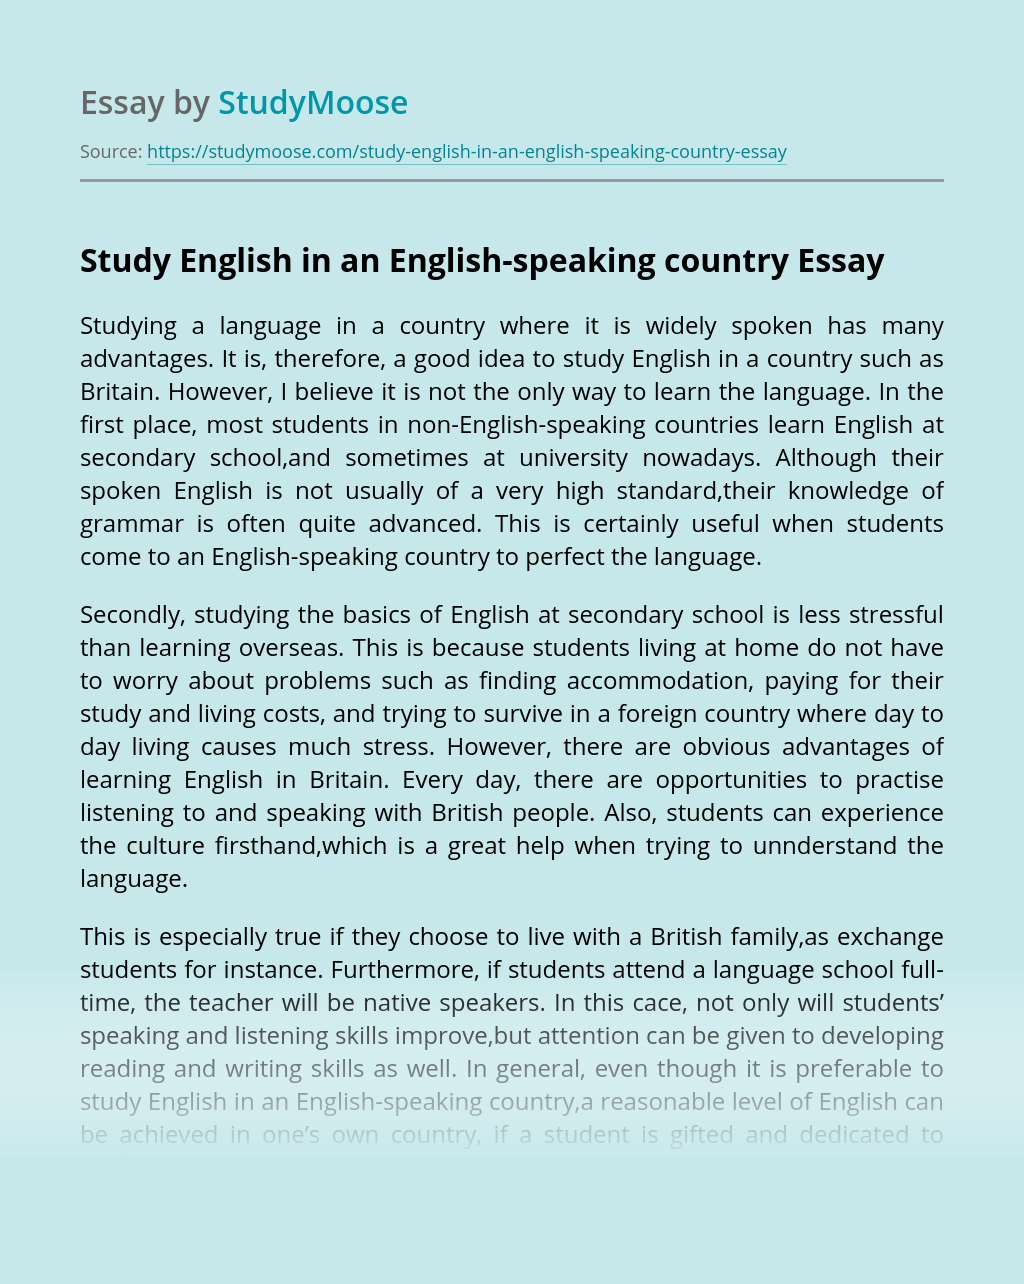 Study English in an English-speaking country